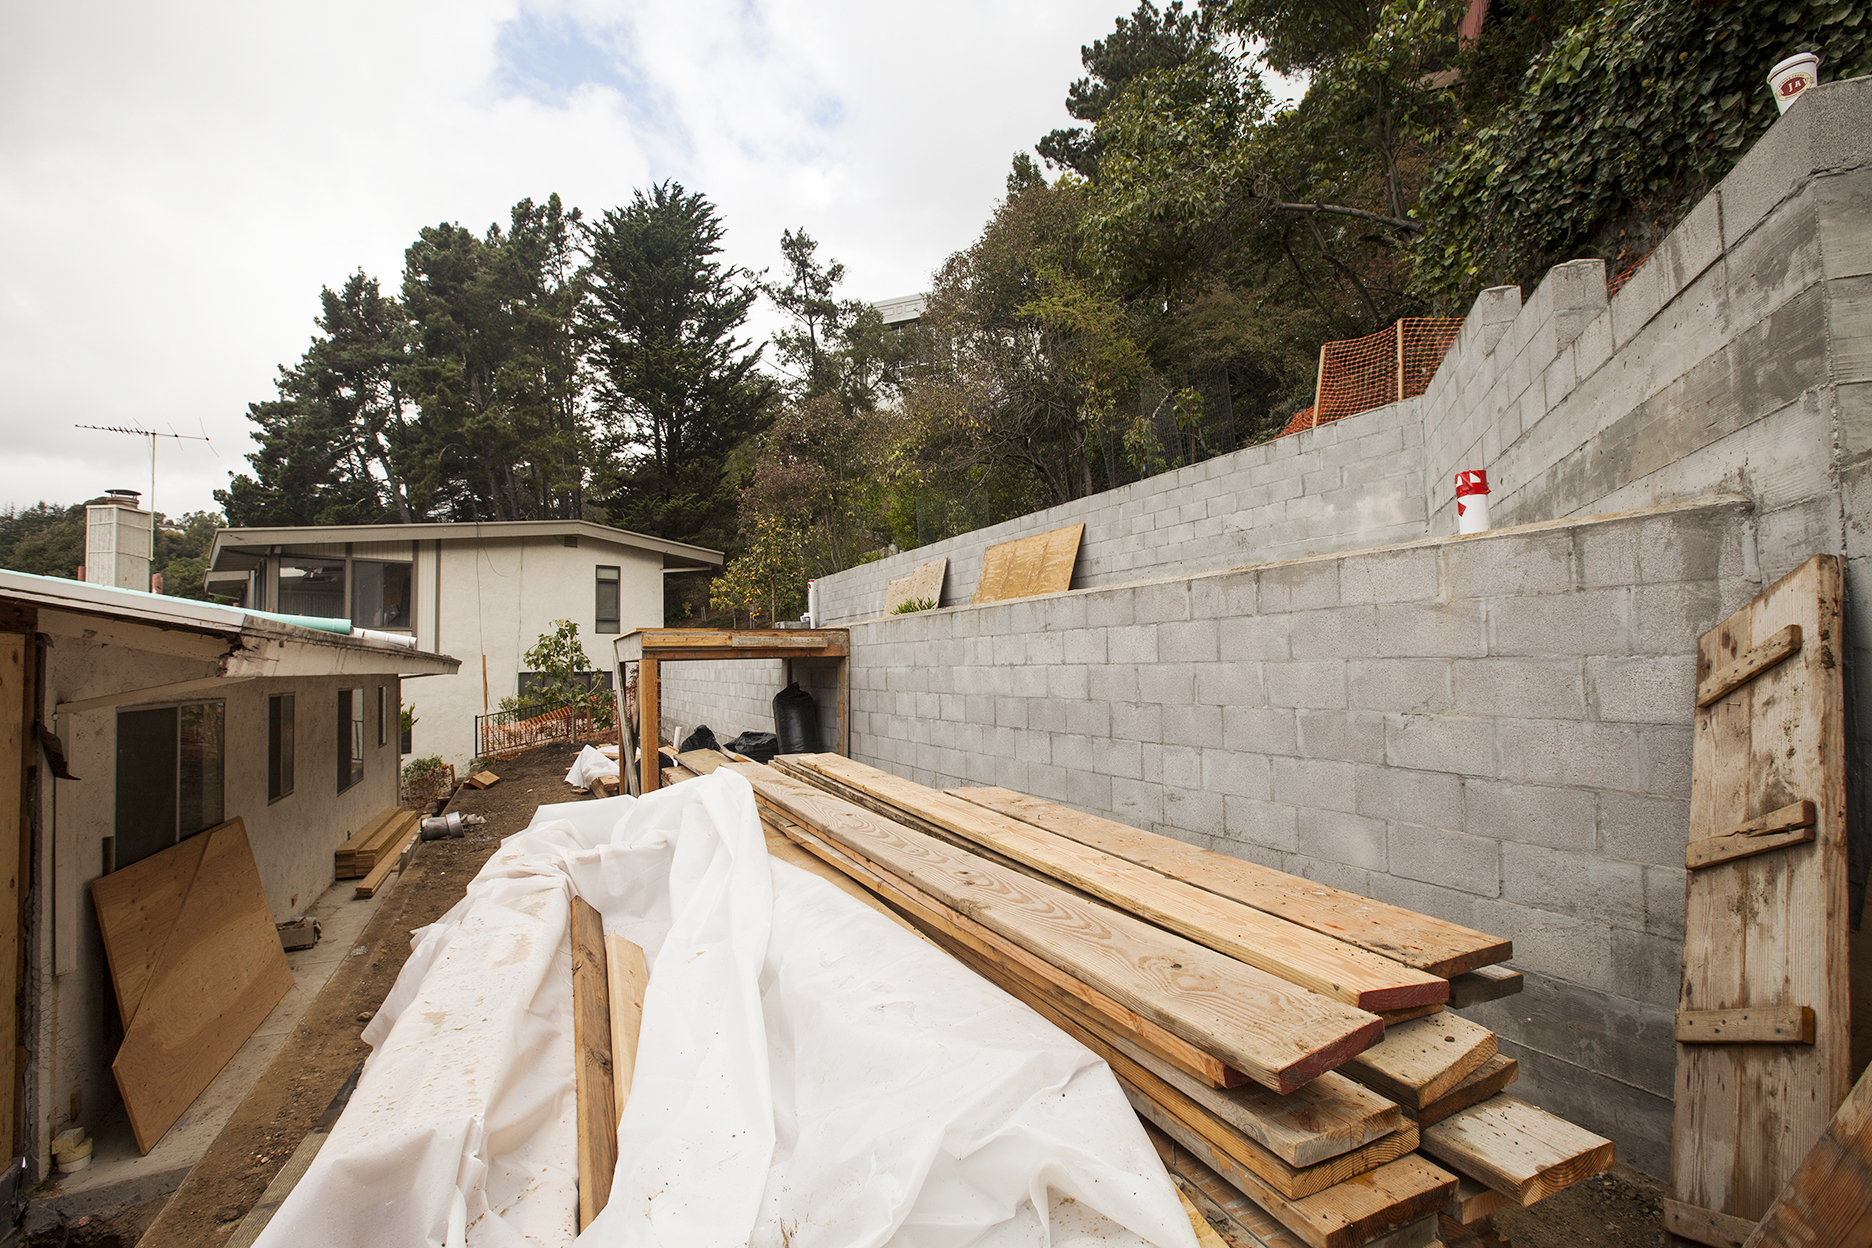 Major terracing begins in the back yard, a once dramatic upward slope.